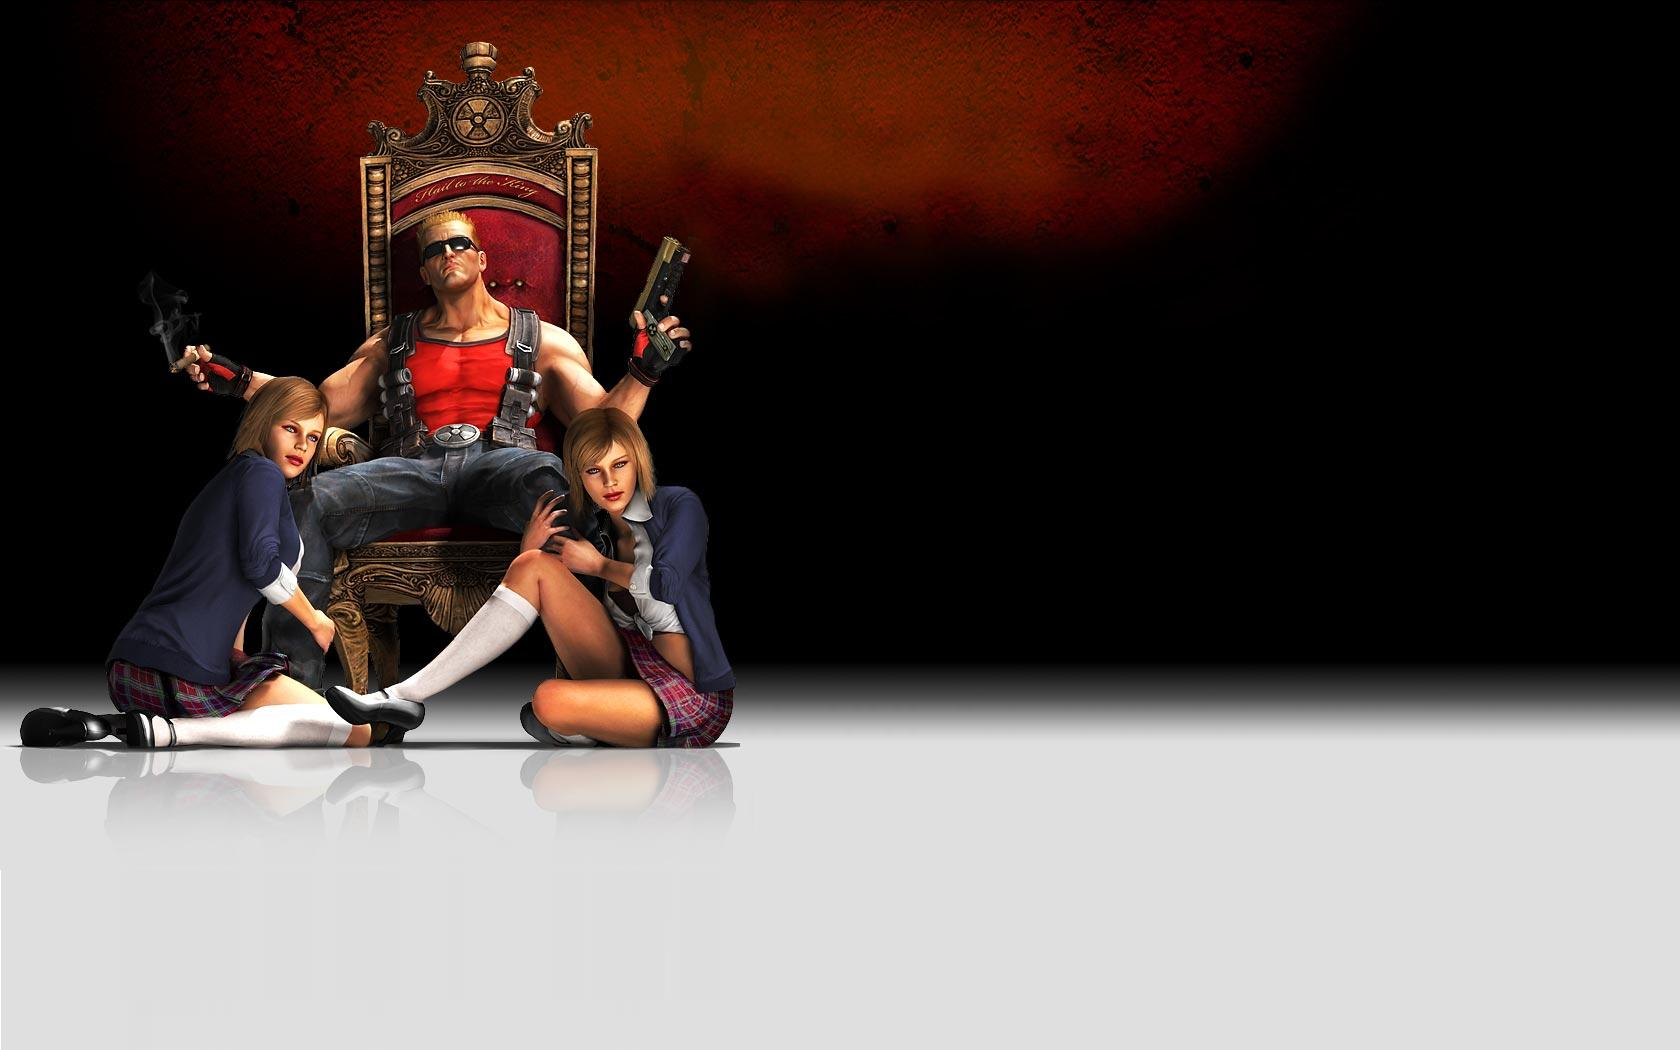 Duke Nukem Full HD Wallpaper and Background | 1920x1200 | ID:210615